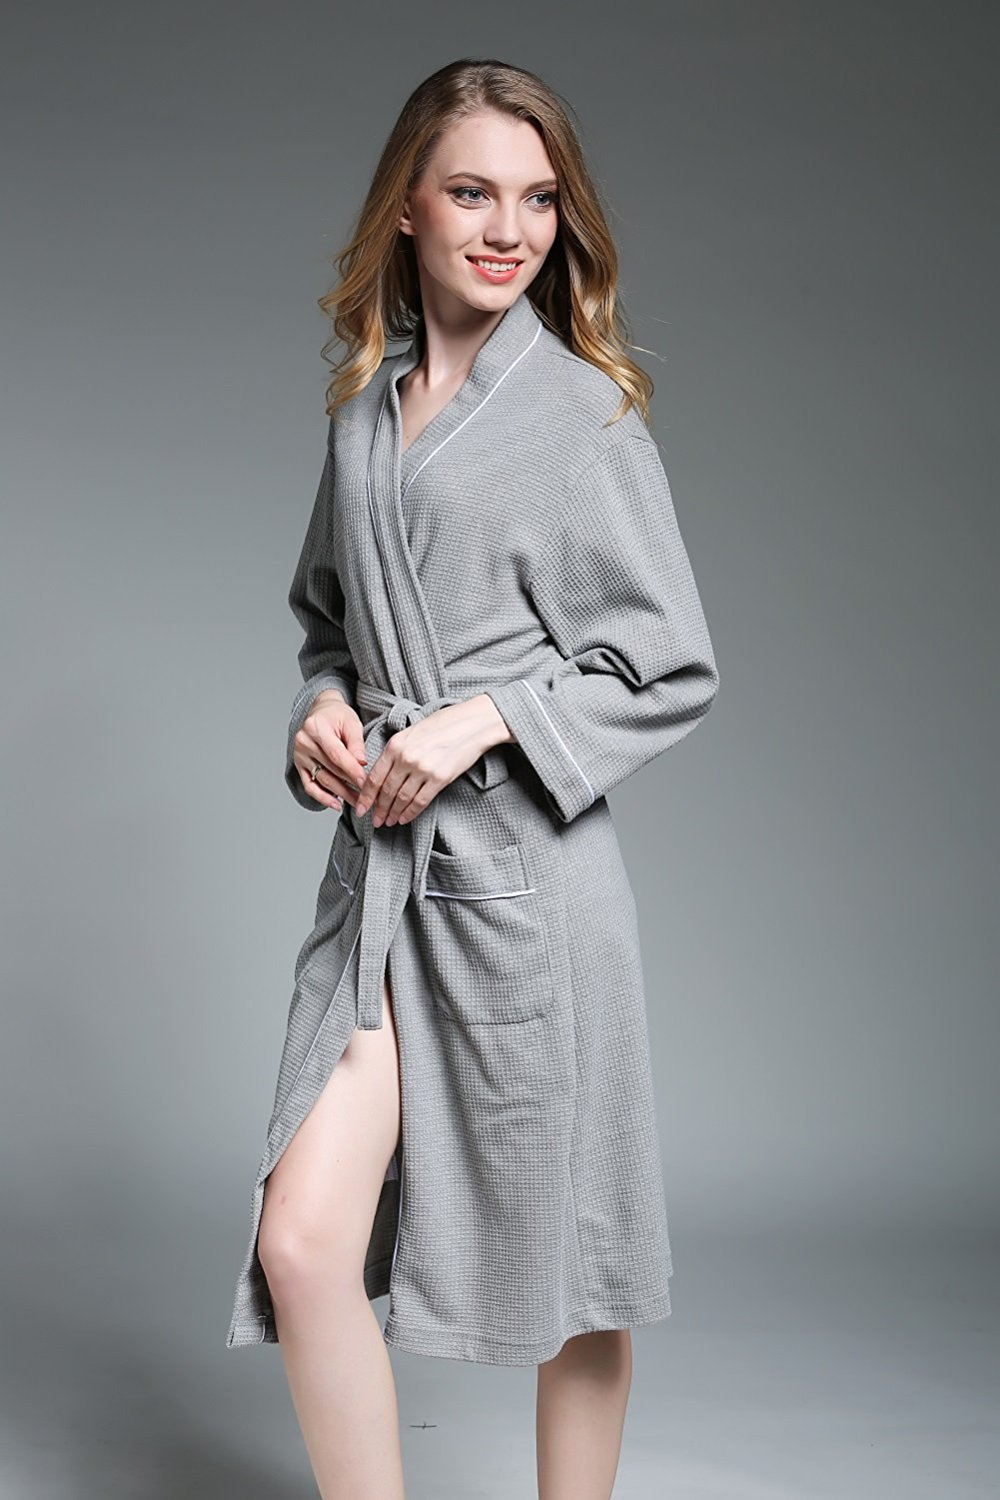 09882c272c Get Quotations · ALJL Lovers bathrobes soft cotton bathrobe hot spring  gowns knitted cotton comfortable breathable gray bathrobes